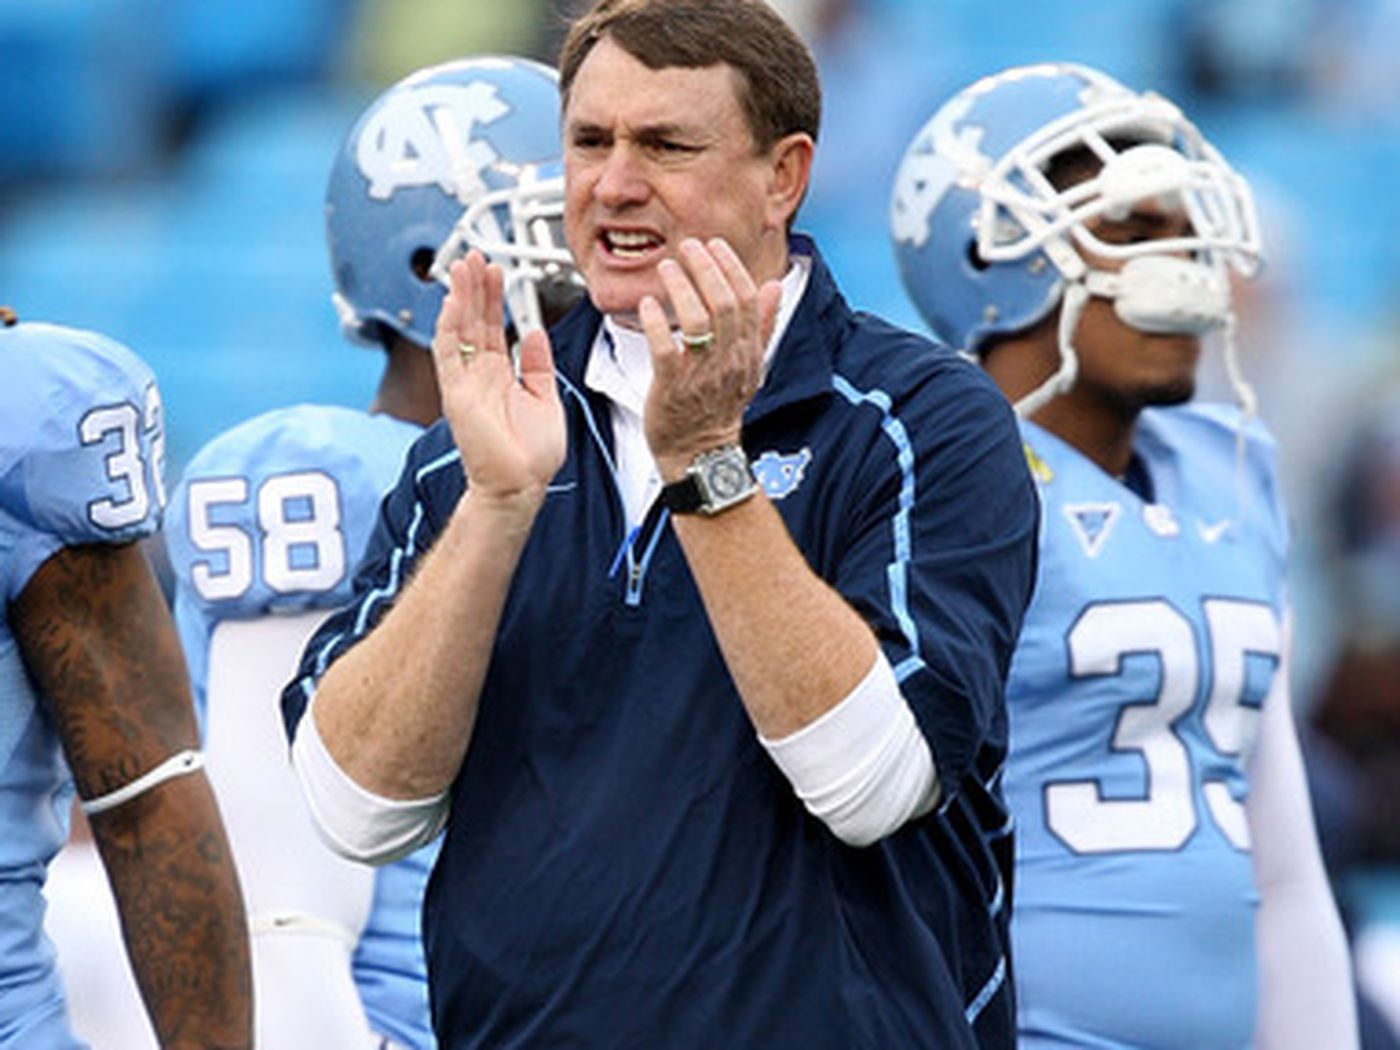 North carolina vs virginia betting preview financial spread betting companies review